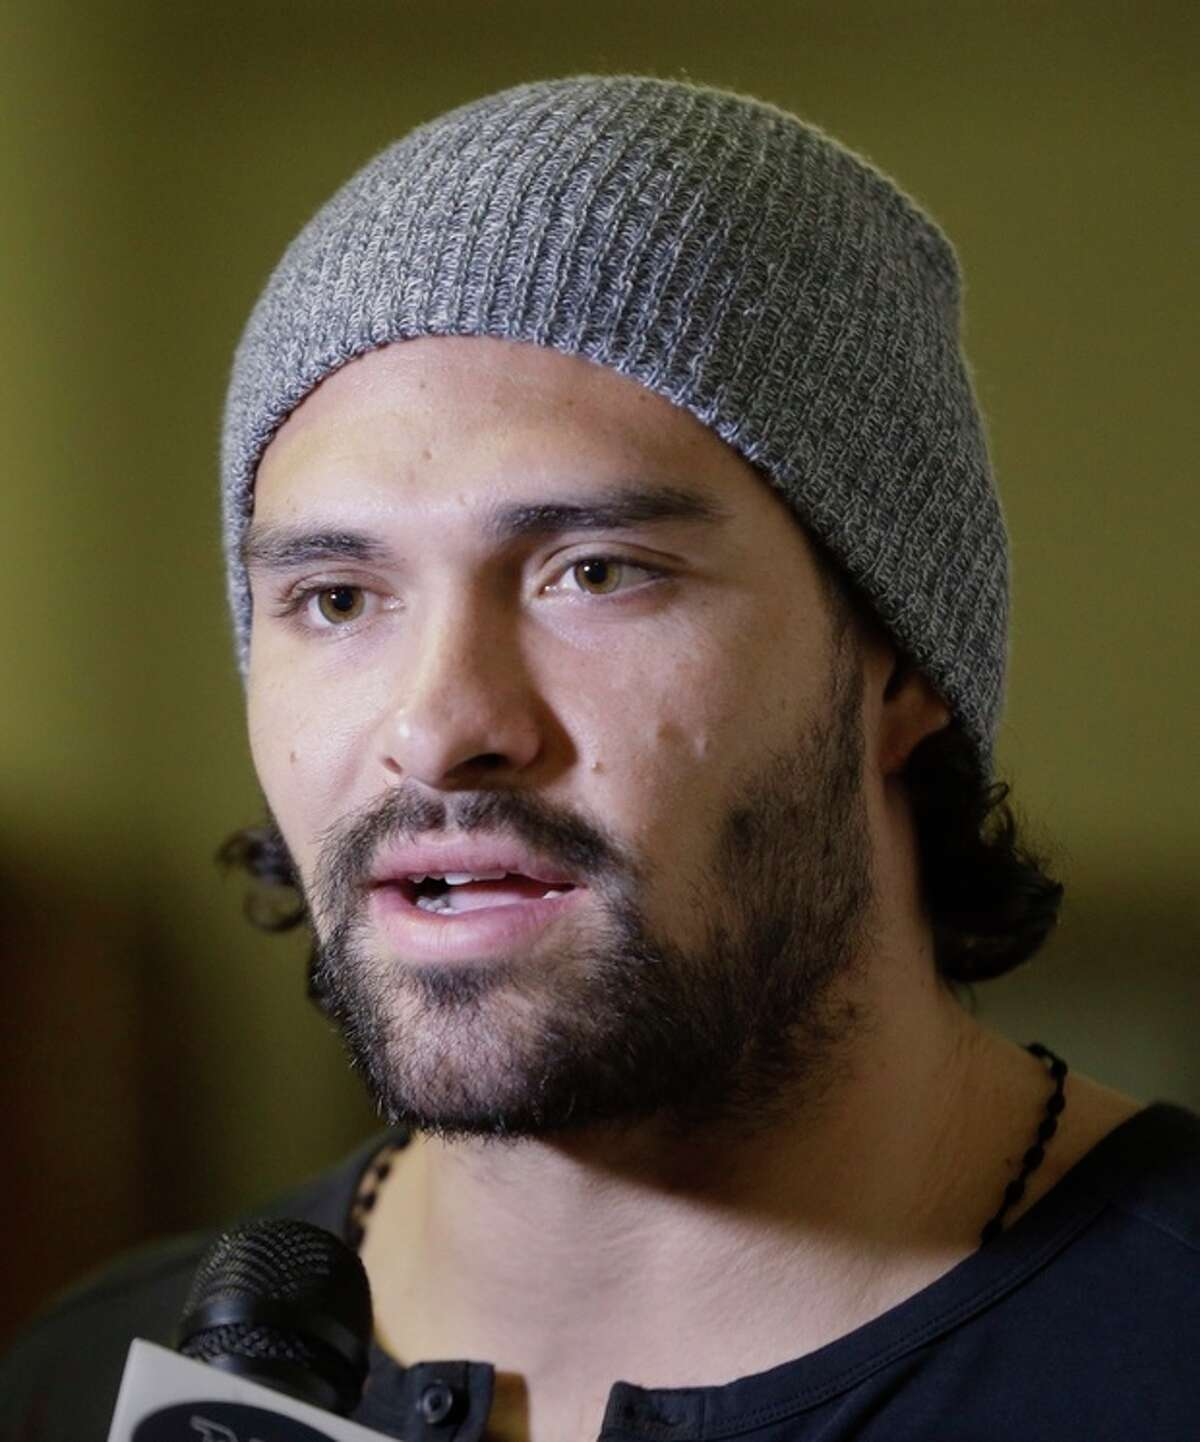 New York Jets FL football quarterback Mark Sanchez is interviewed during a visit to the Community Soup Kitchen of Morristown as part of the team's Thanksgiving Day week celebration, Tuesday, Nov. 26, 2013, in Morristown, N.J. (AP Photo/Julio Cortez)